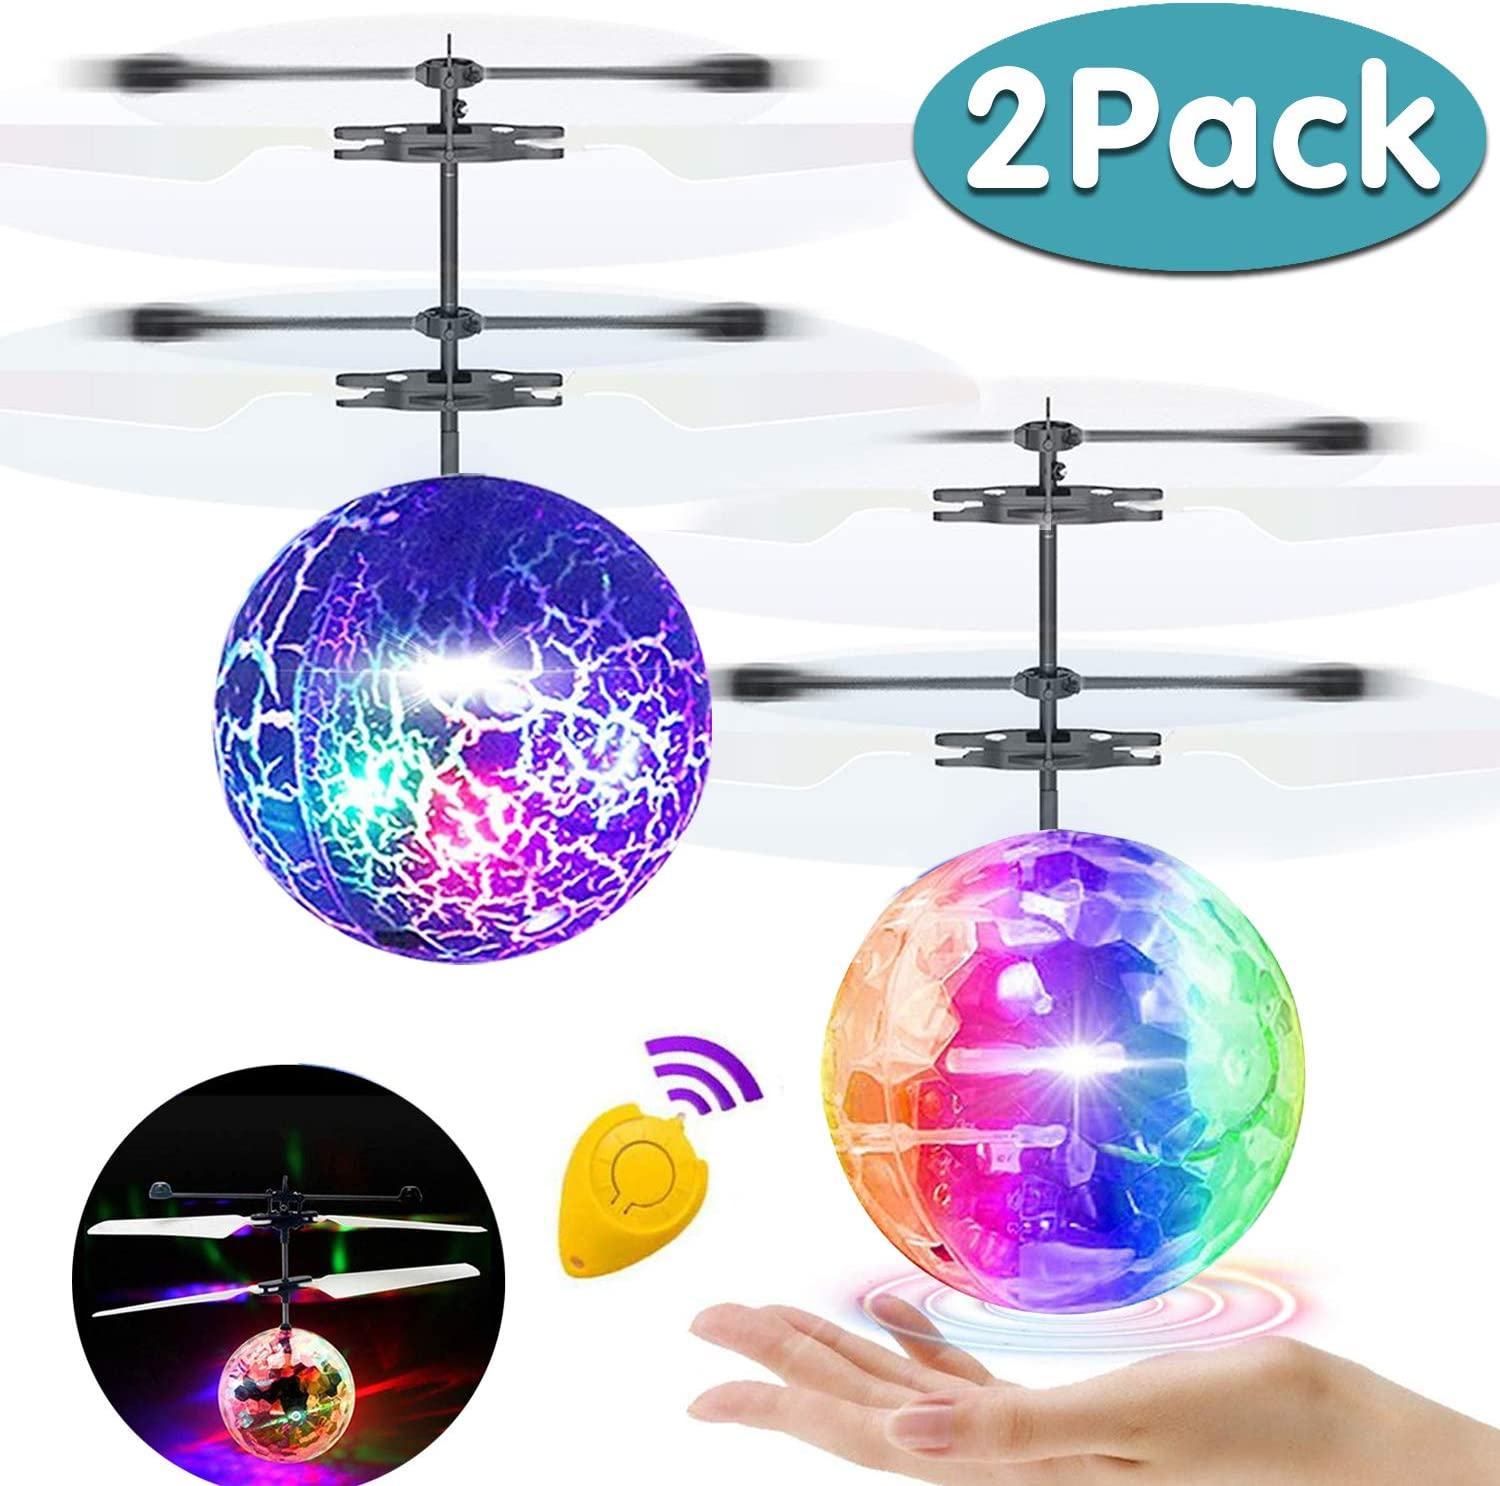 AMENON Flying Ball, 2 Pack Kids Toys Remote Controller Helicopter Infrared Induction RC Flying Toys Birthday Gifts for Kids Boys Girls Rechargeable Light Up Ball RC Drone Toy for Indoor Outdoor Games